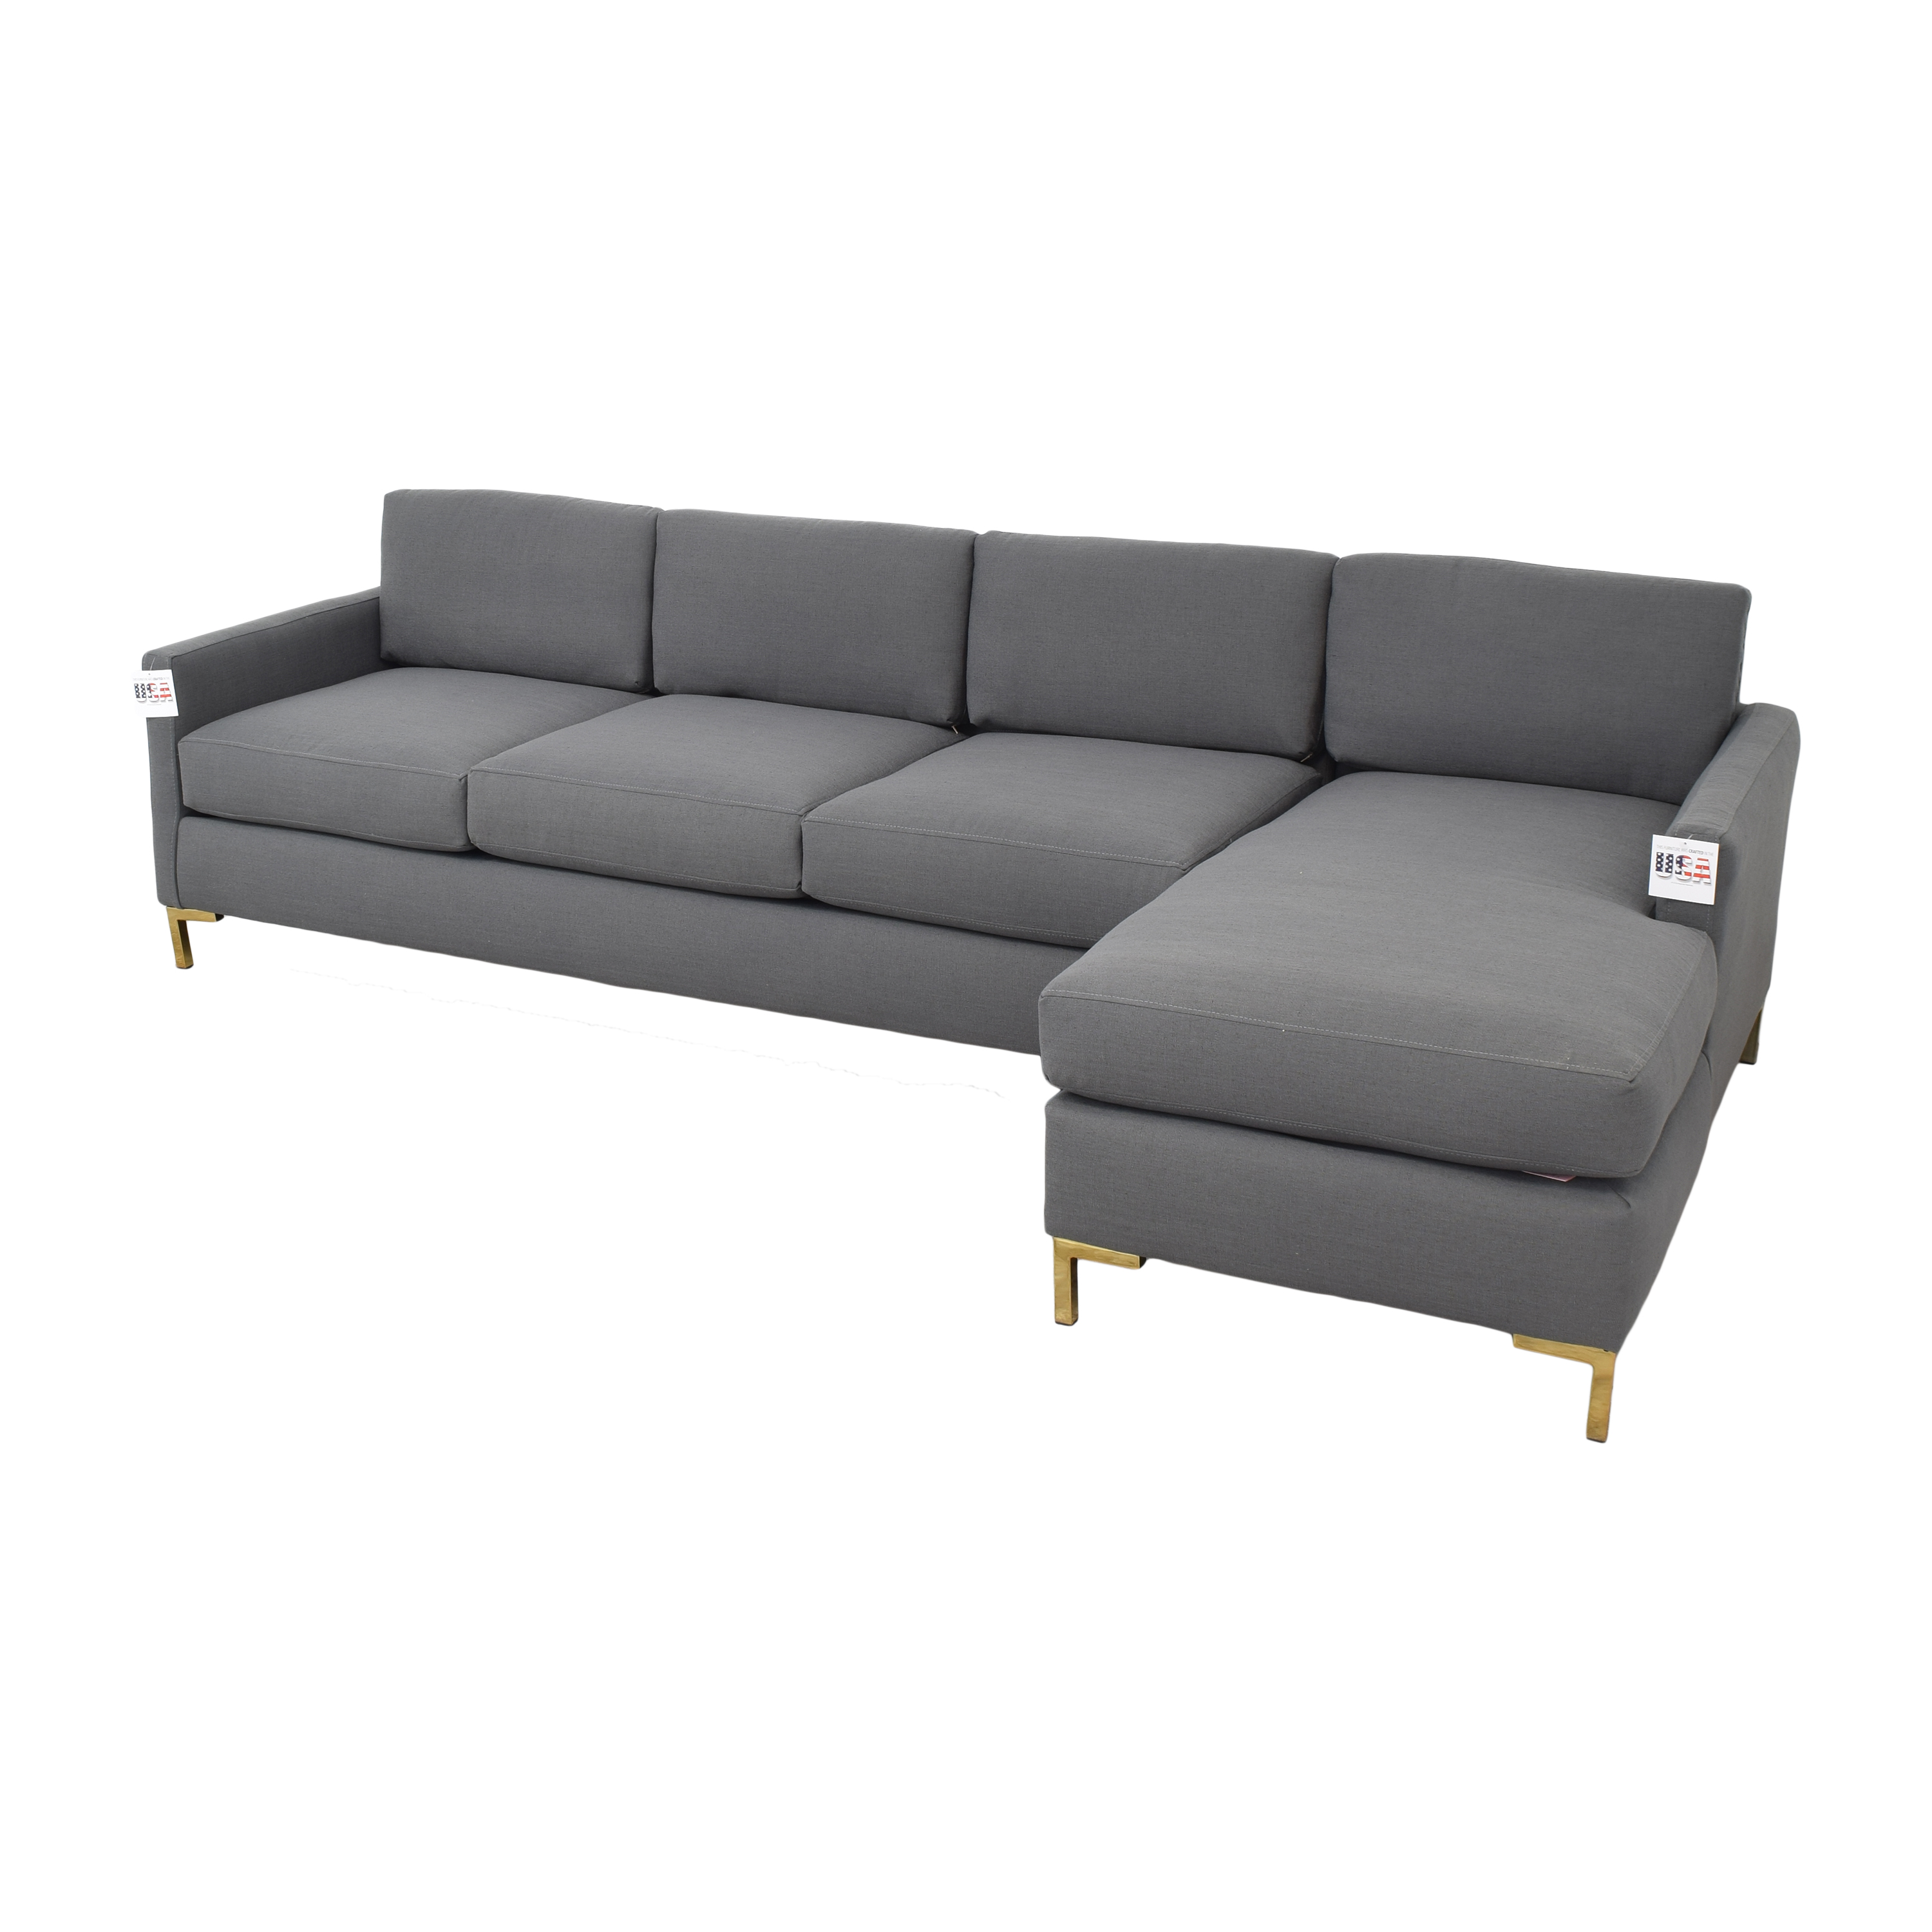 The Inside The Inside Modern Sectional-Right Facing second hand